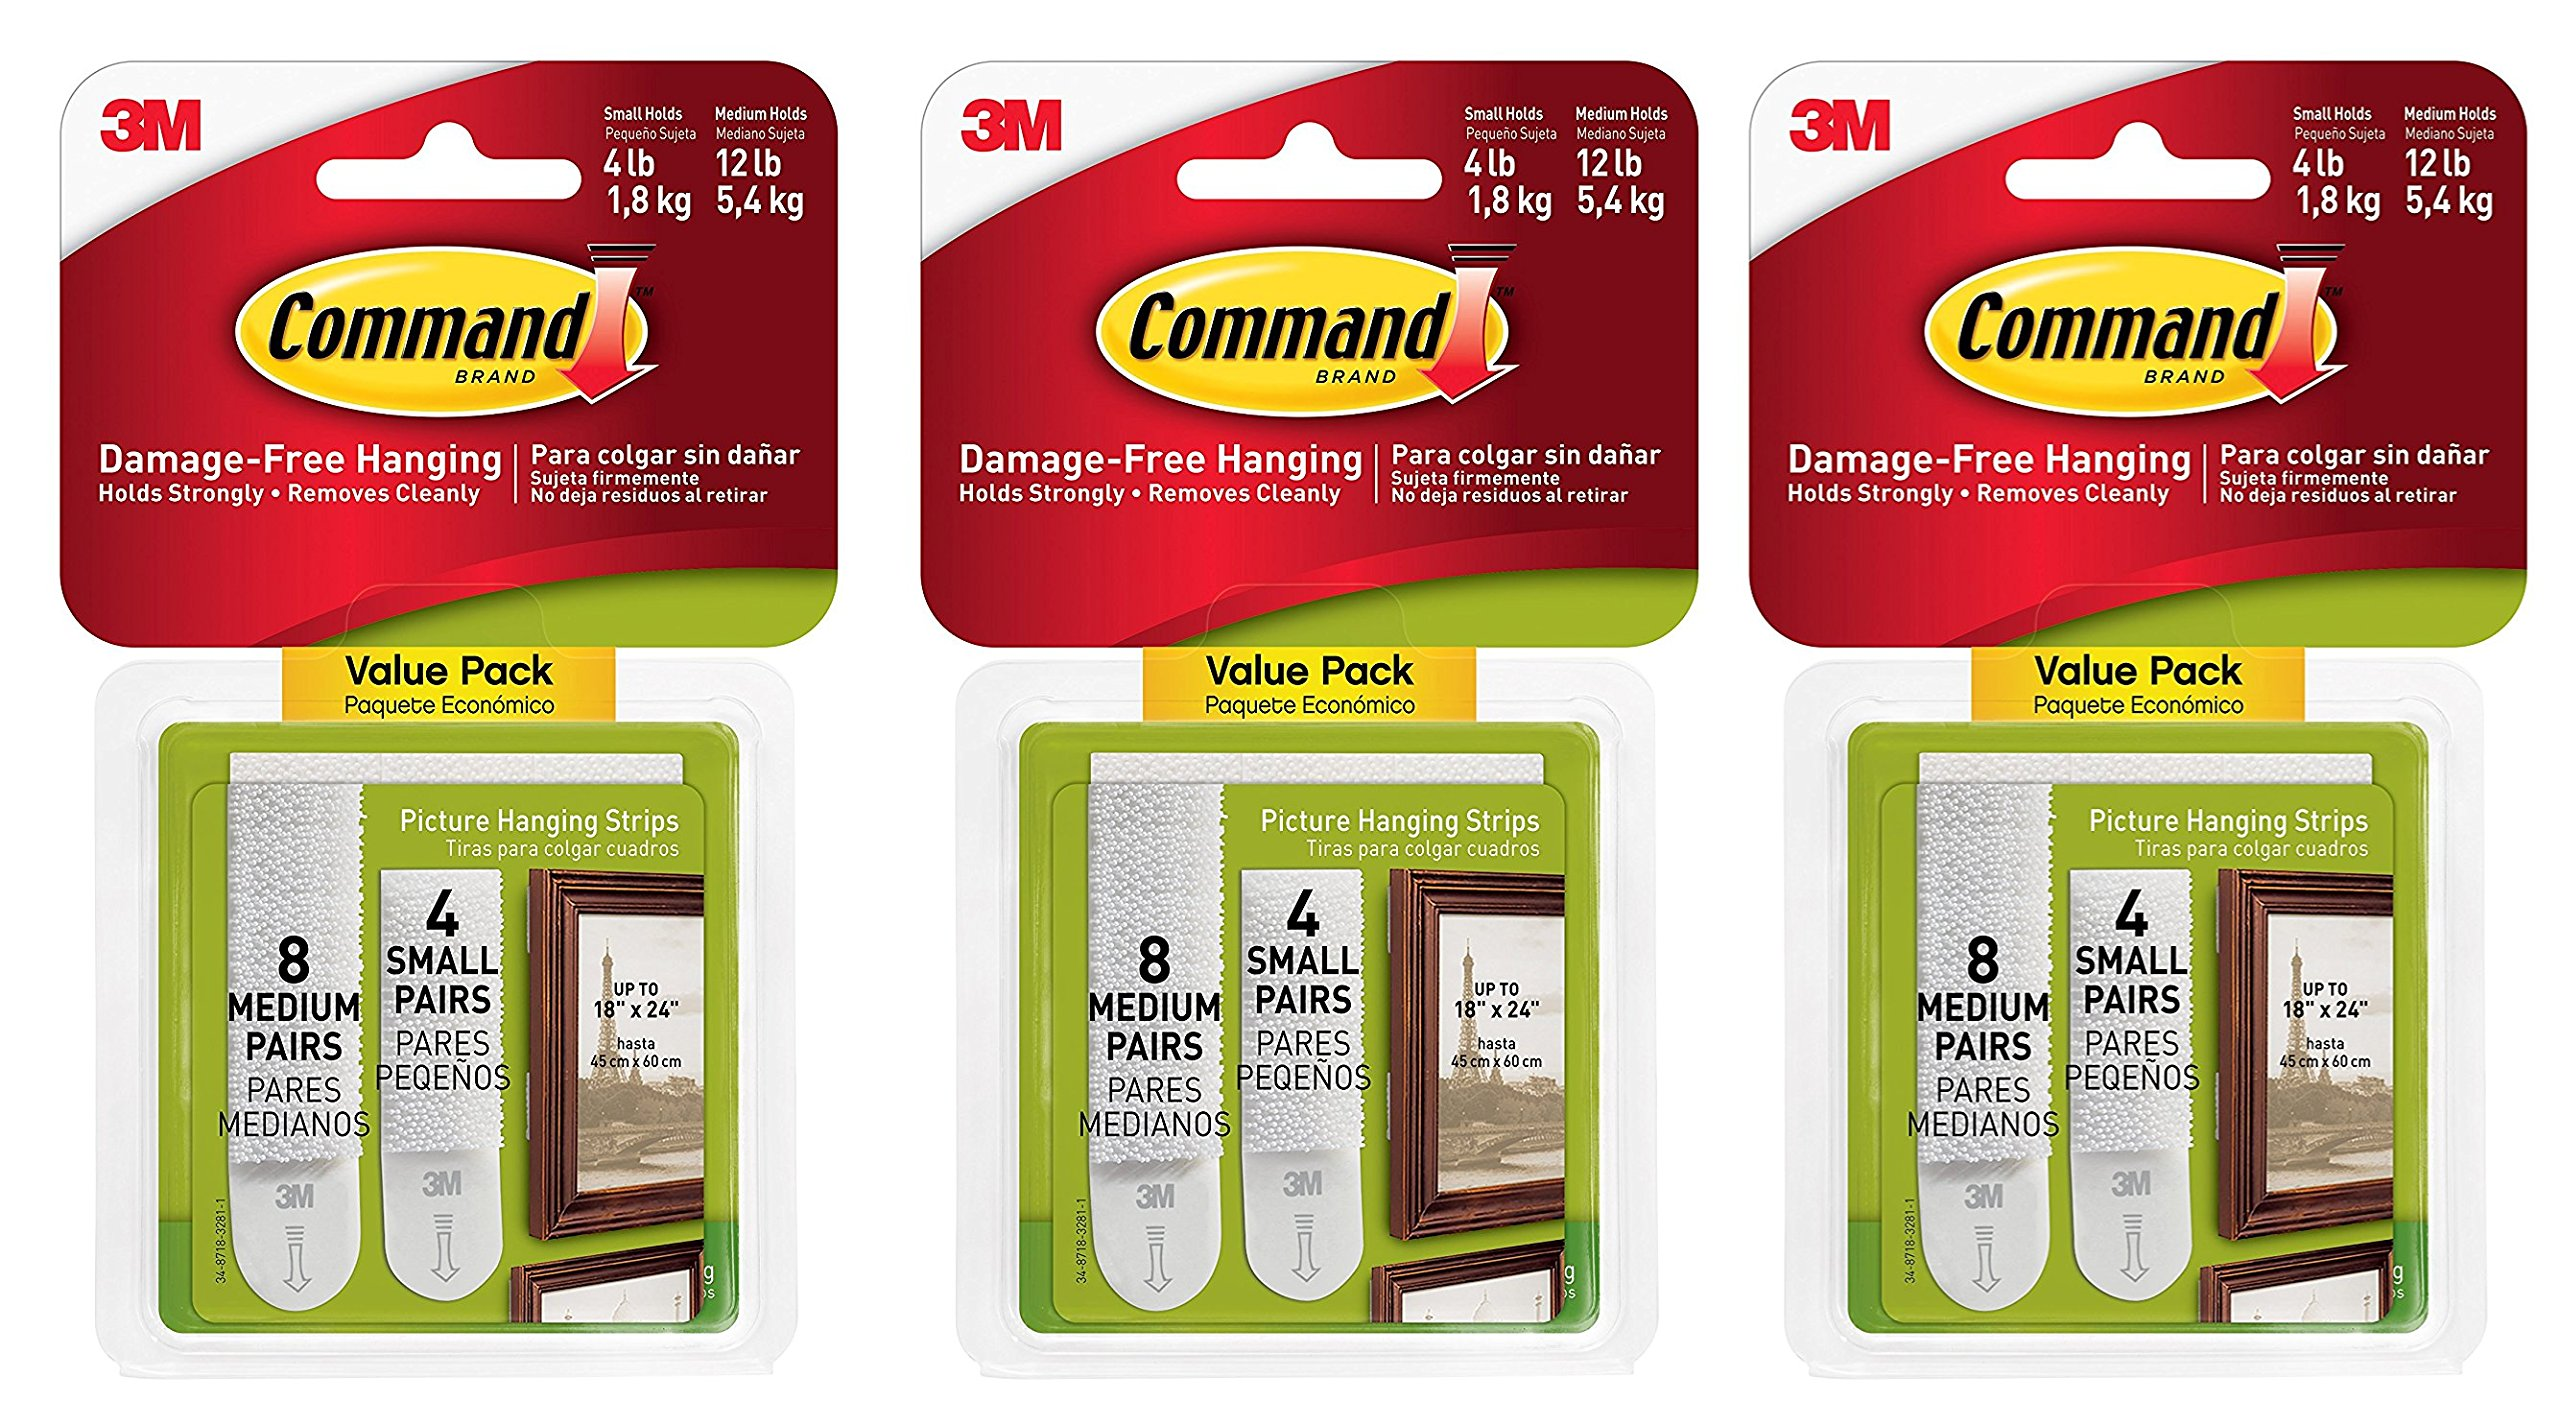 Command Picture Hanging Strips Variety Value Pack, 4-Small and 8-Medium Pairs (17203-ES), 3 Pack